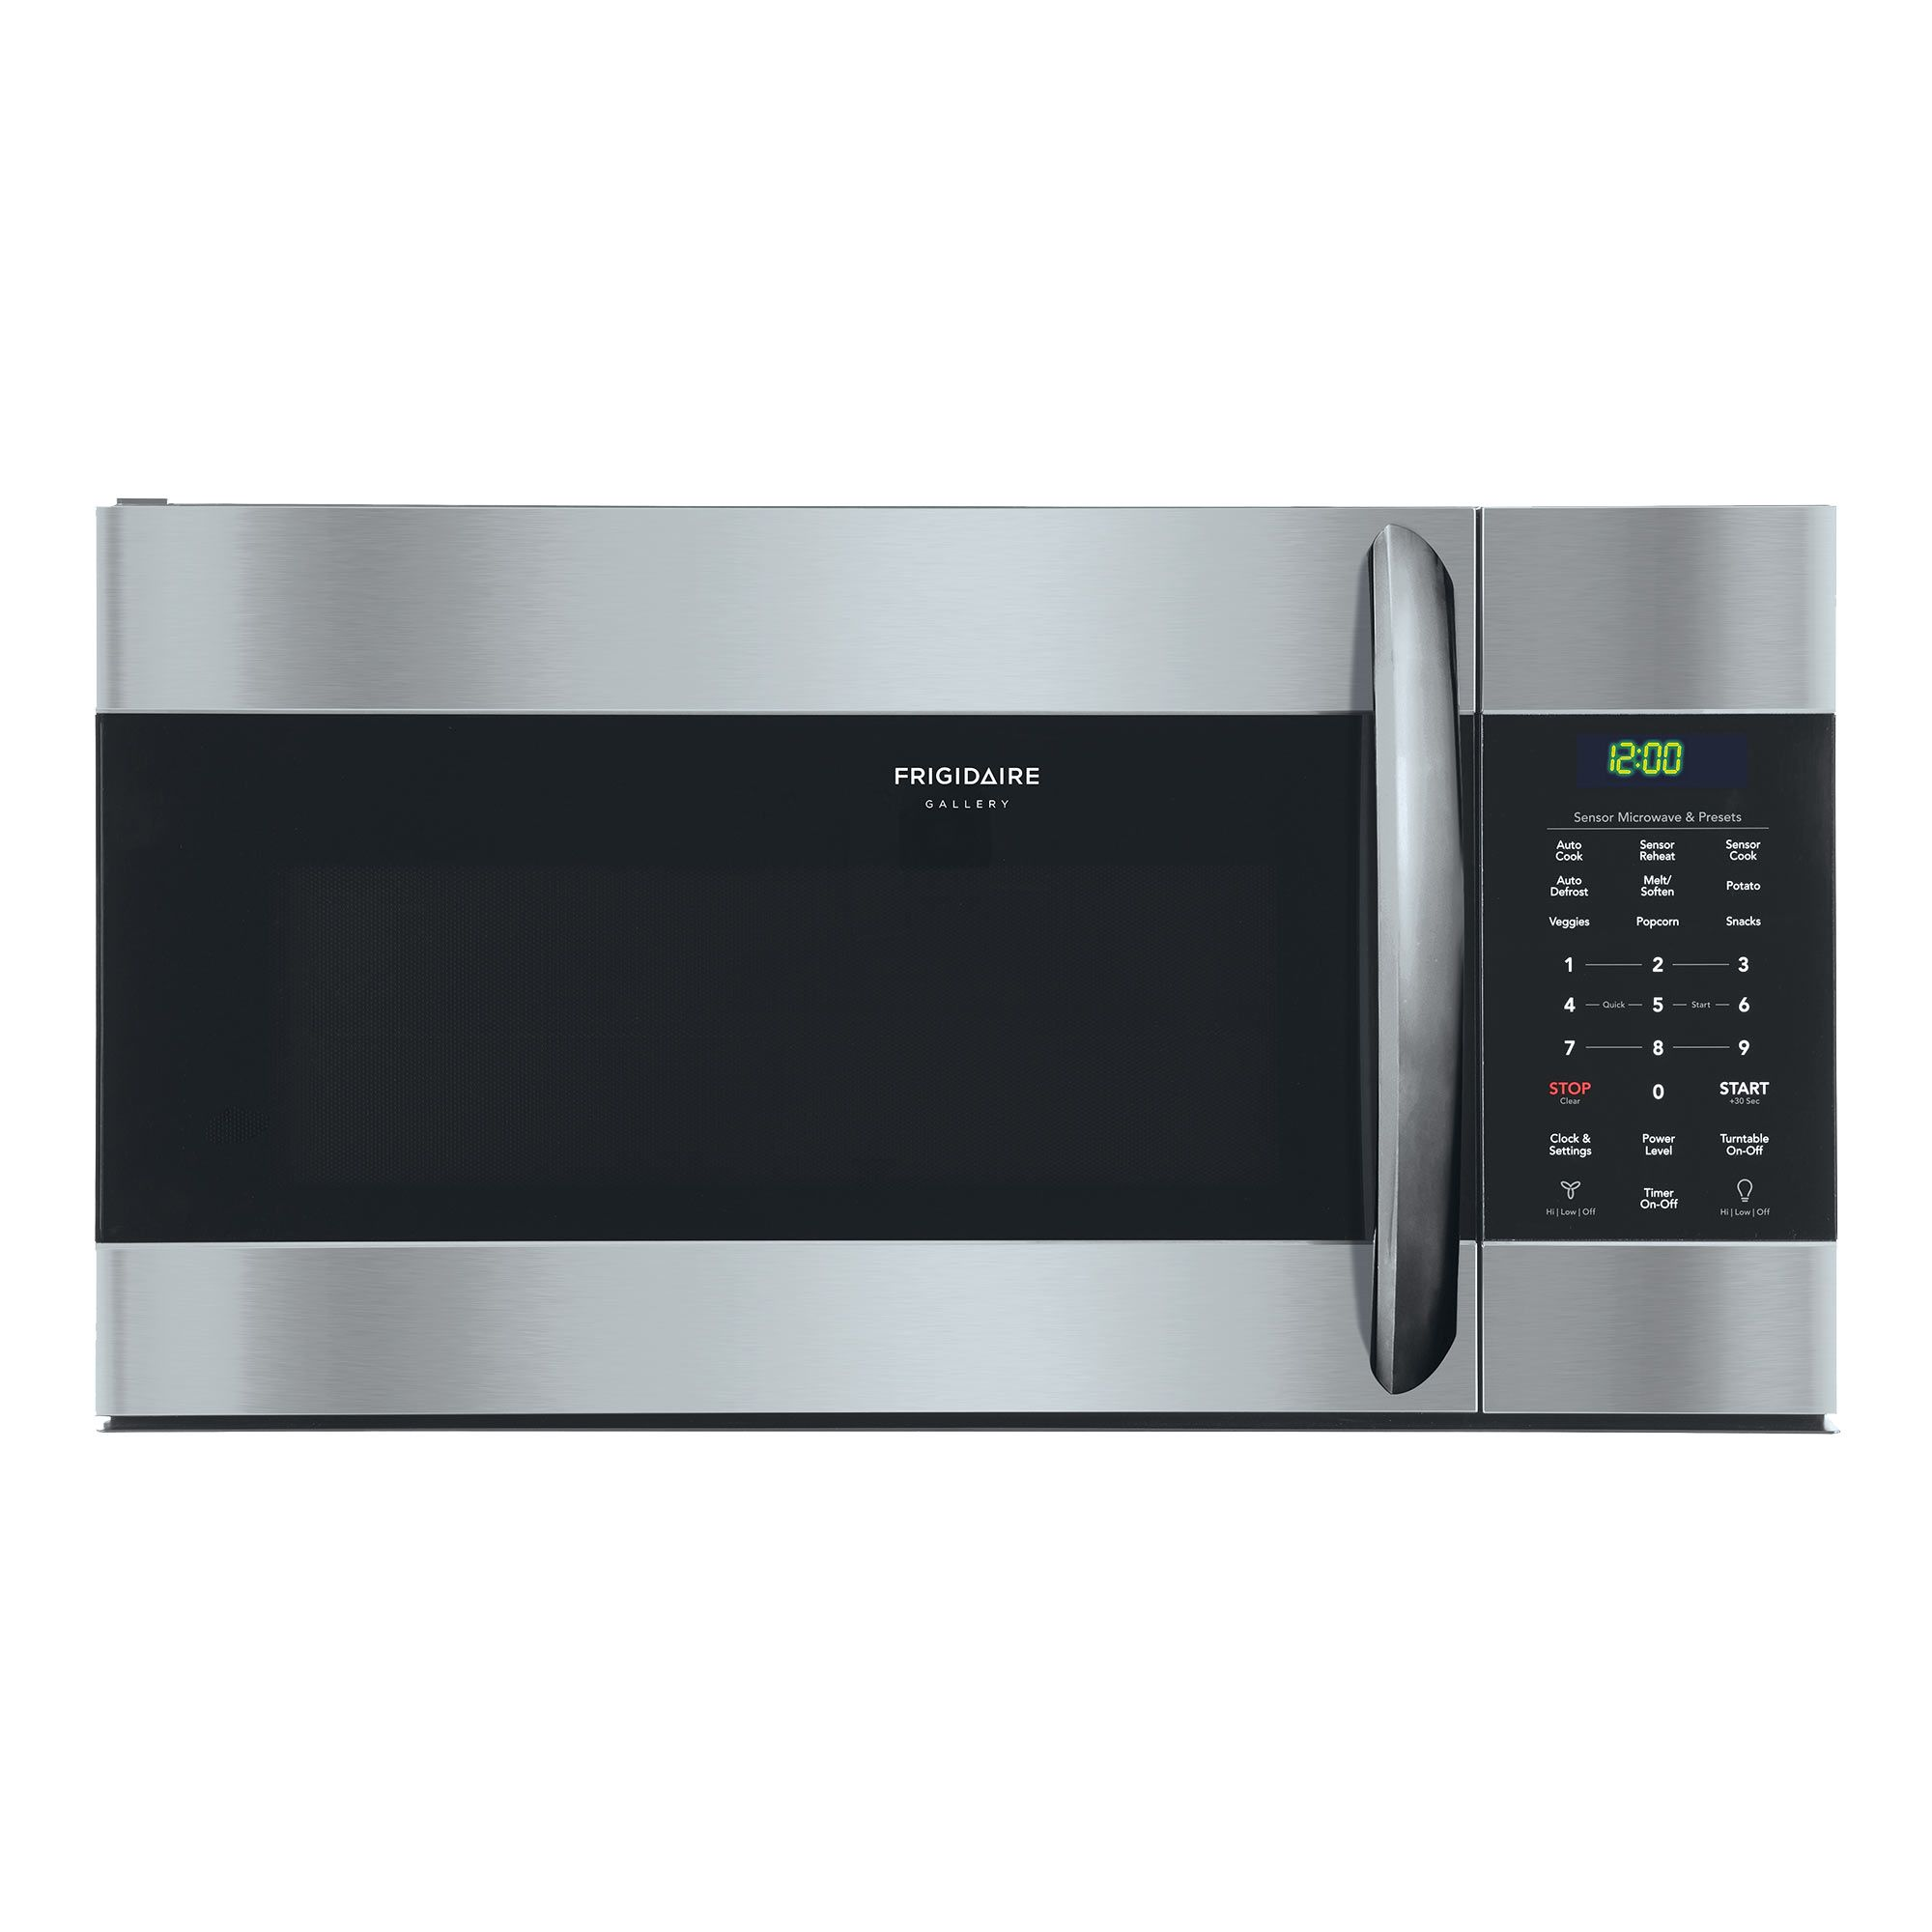 120 volt 1 7 cubic ft over the range microwave oven